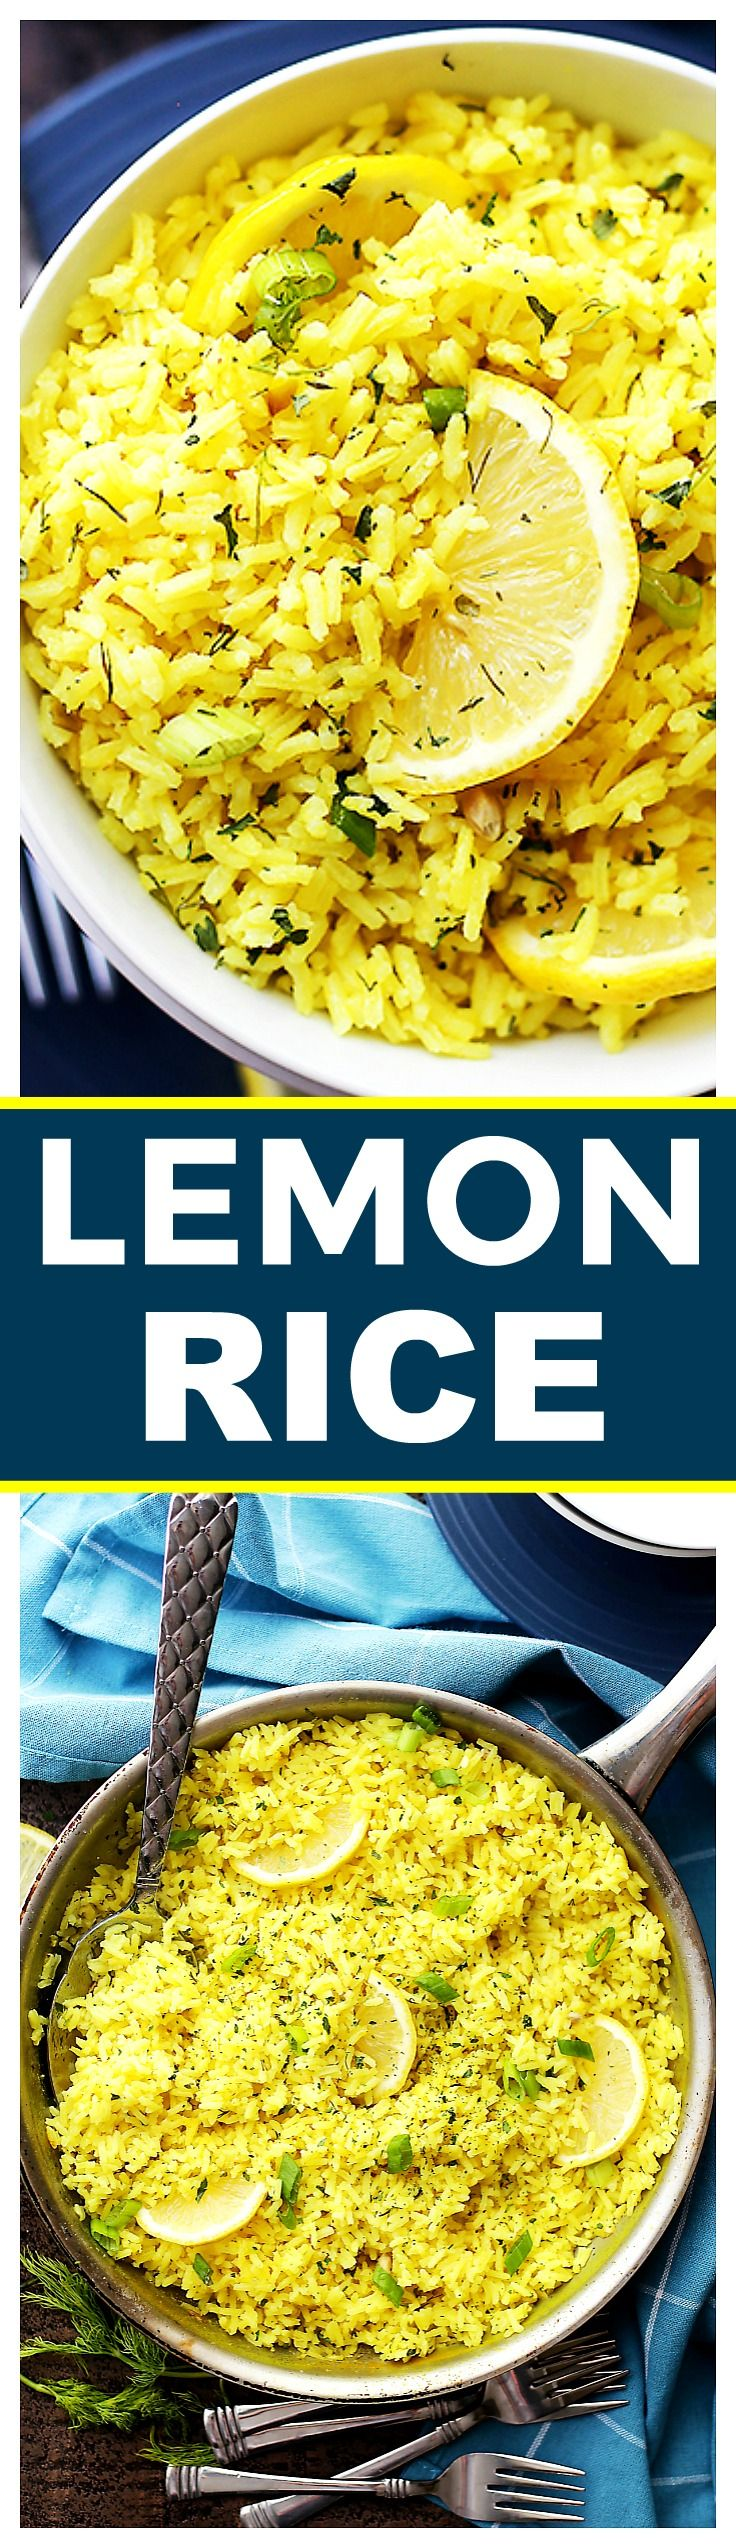 Lemon Rice Recipe – Bursting with lemon flavor, this is a delicious way to turn plain rice into an exotic dish, and it's the perfect accompaniment to any meats and/or veggies.